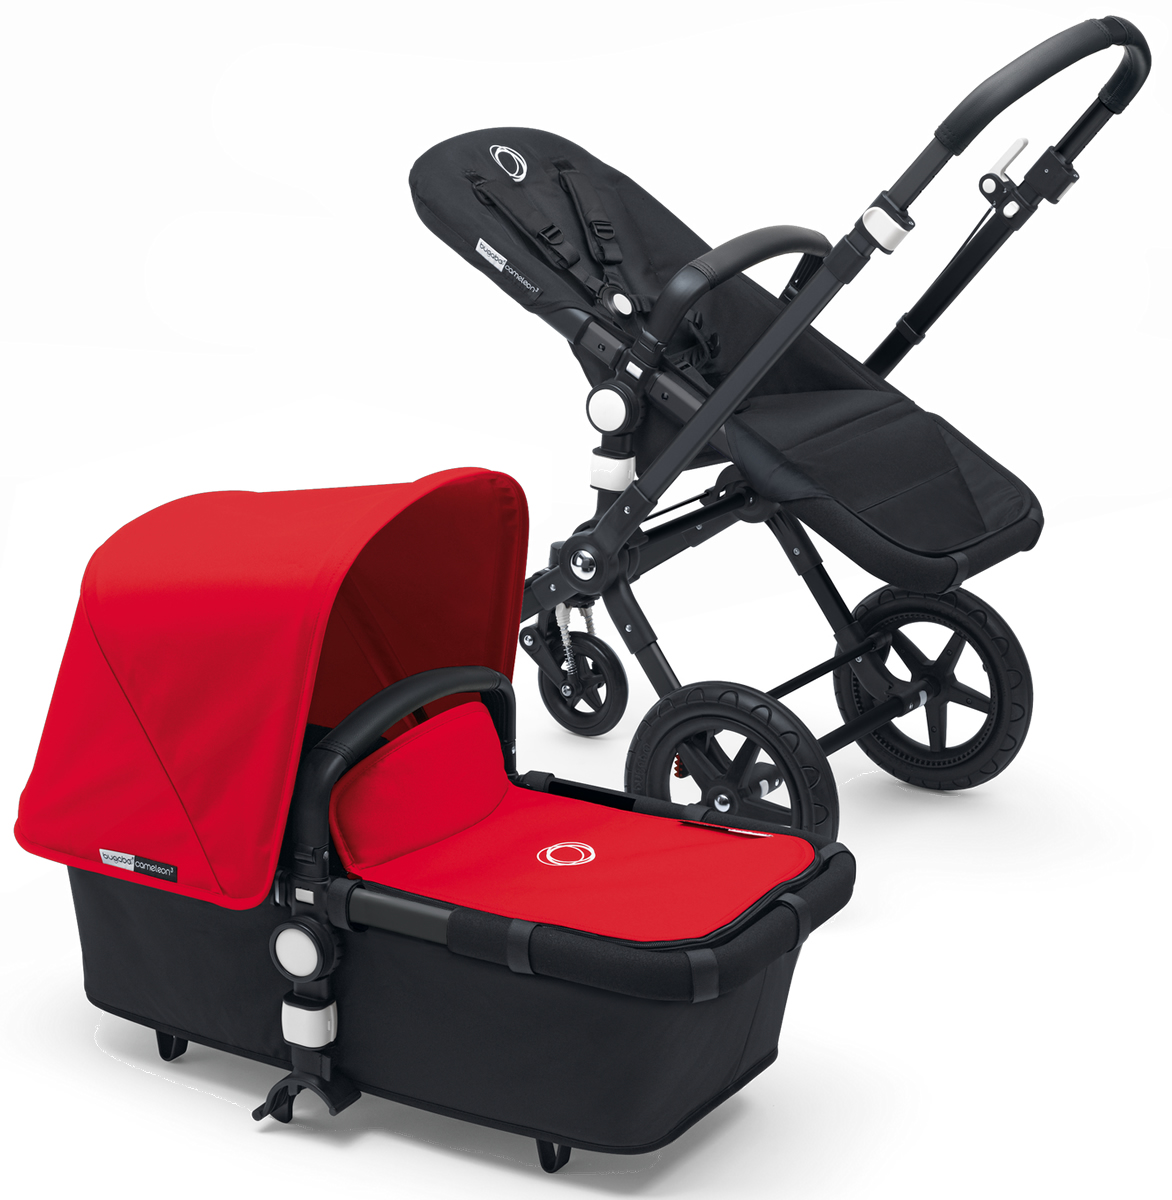 Bugaboo Cameleon 3 Stroller - All Black/Red